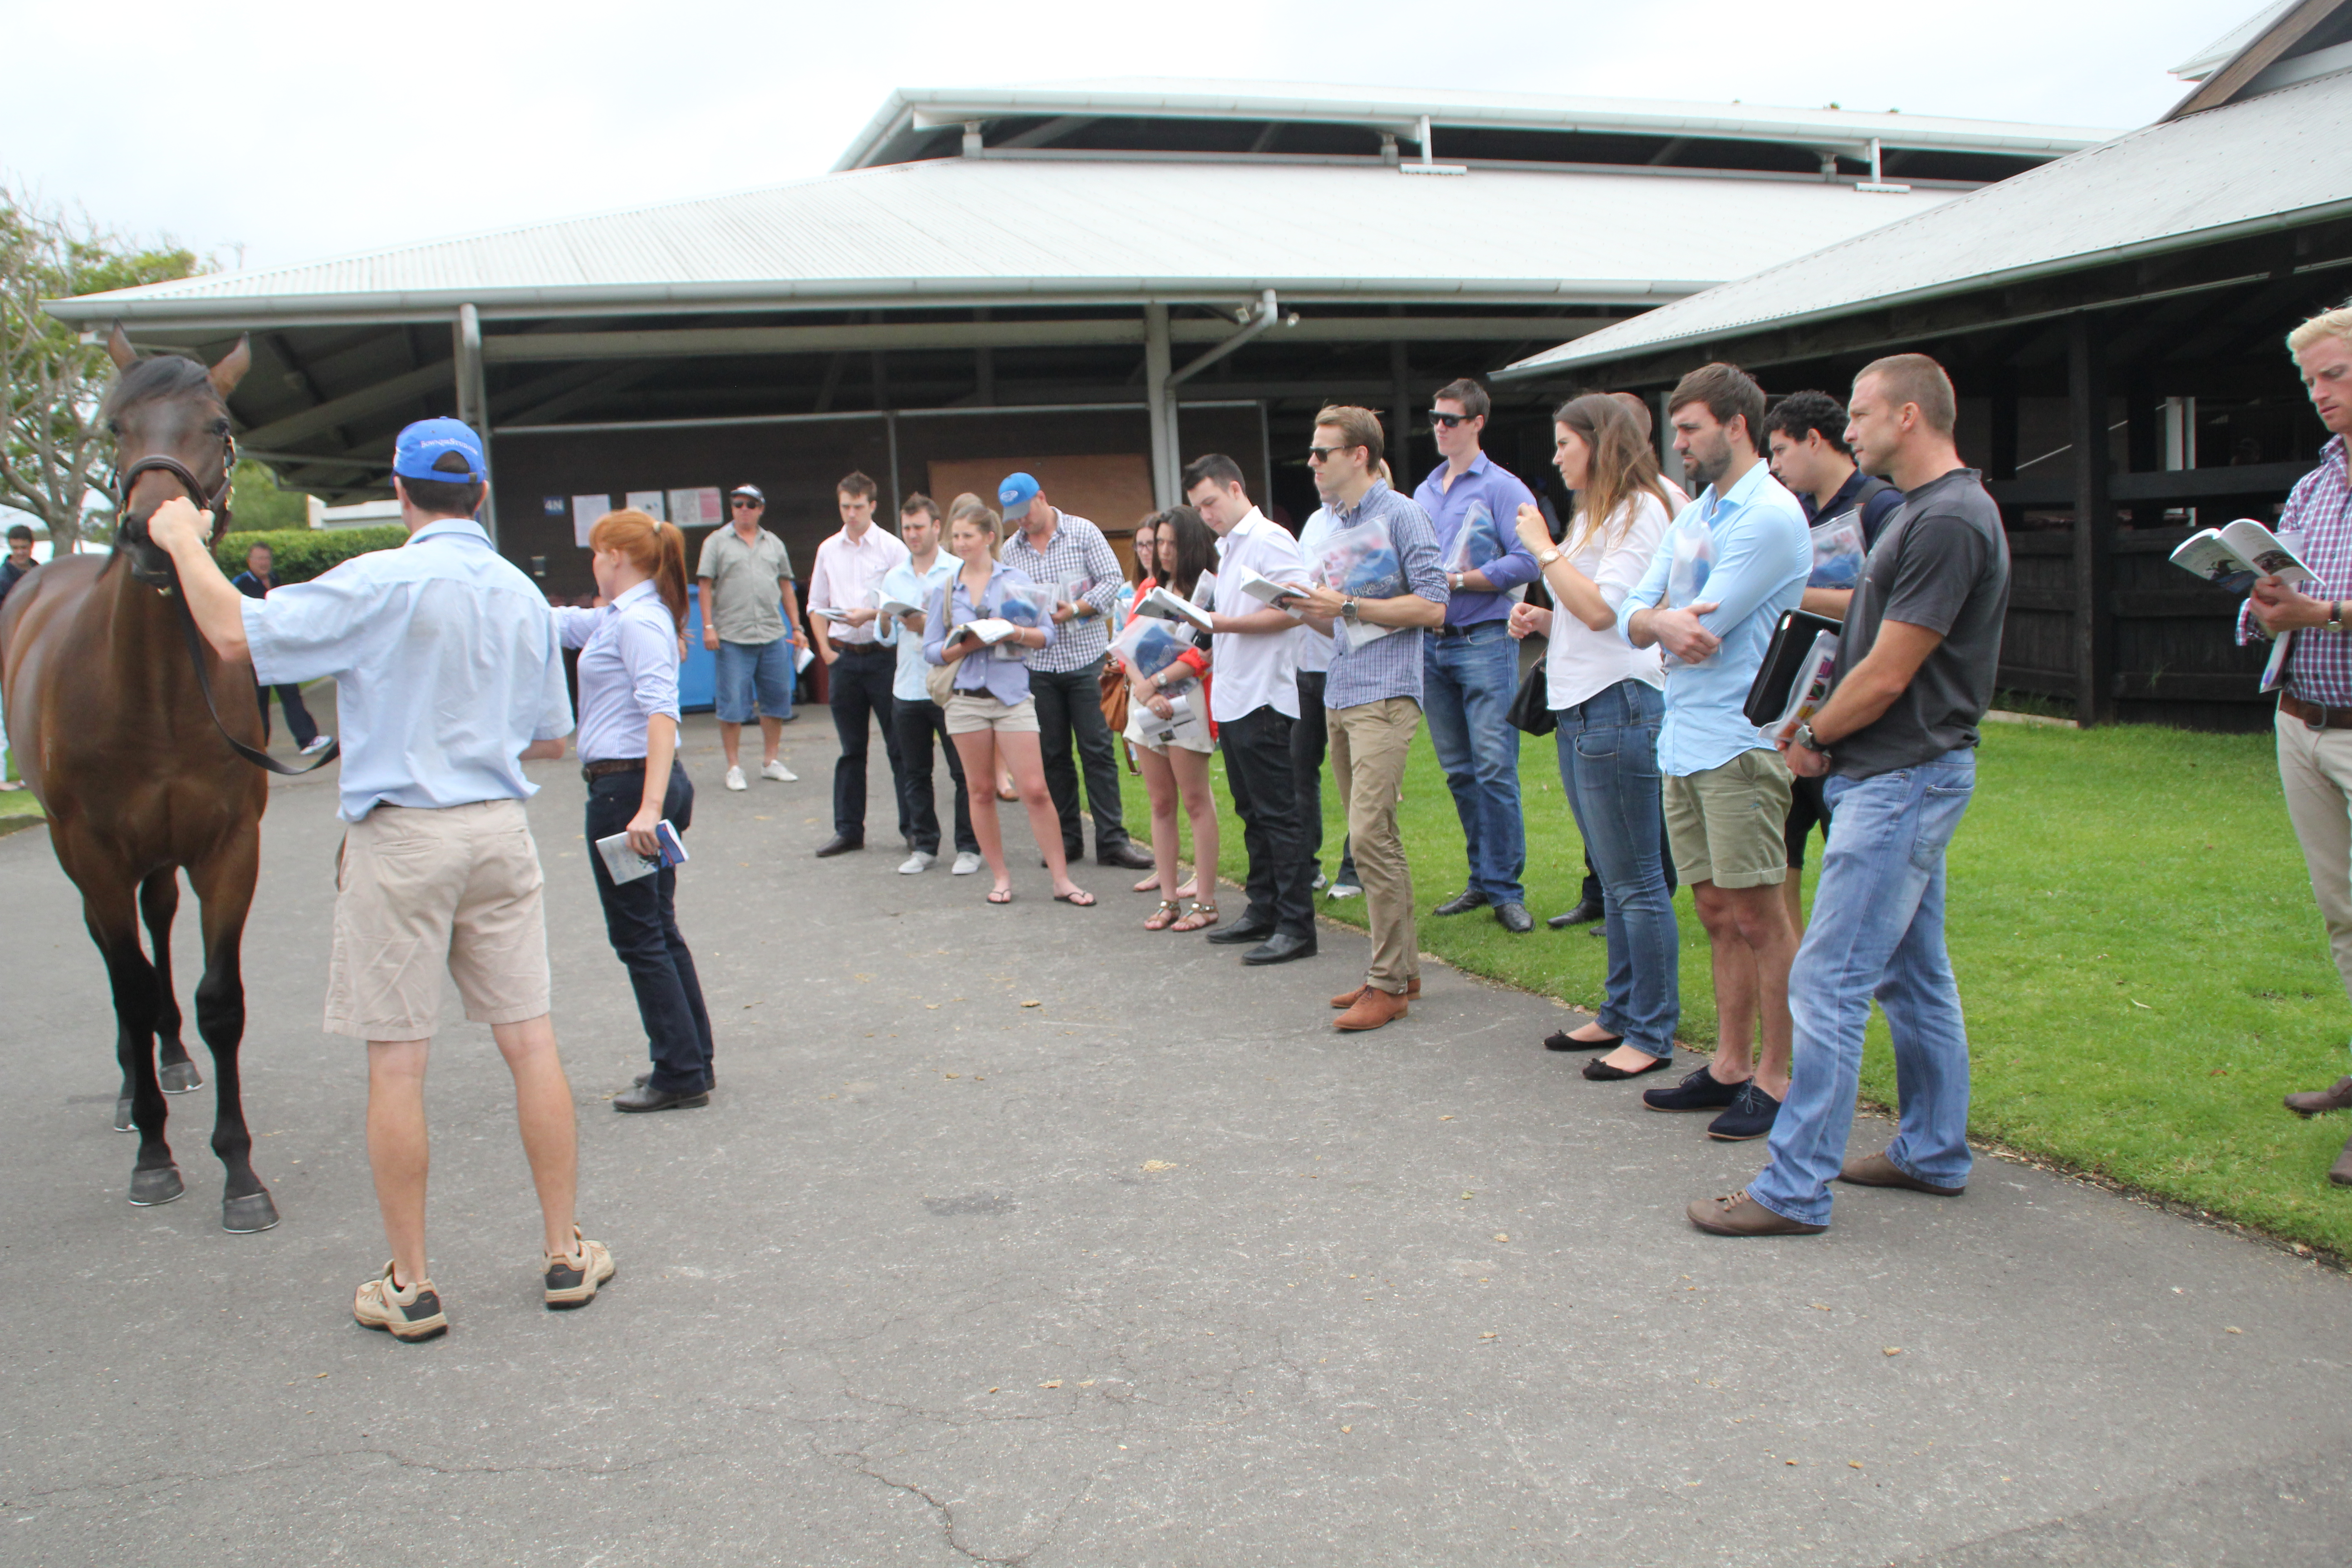 Media Release: YPR get first-class experience at 2013 Inglis Sydney Classic Yearling Sale